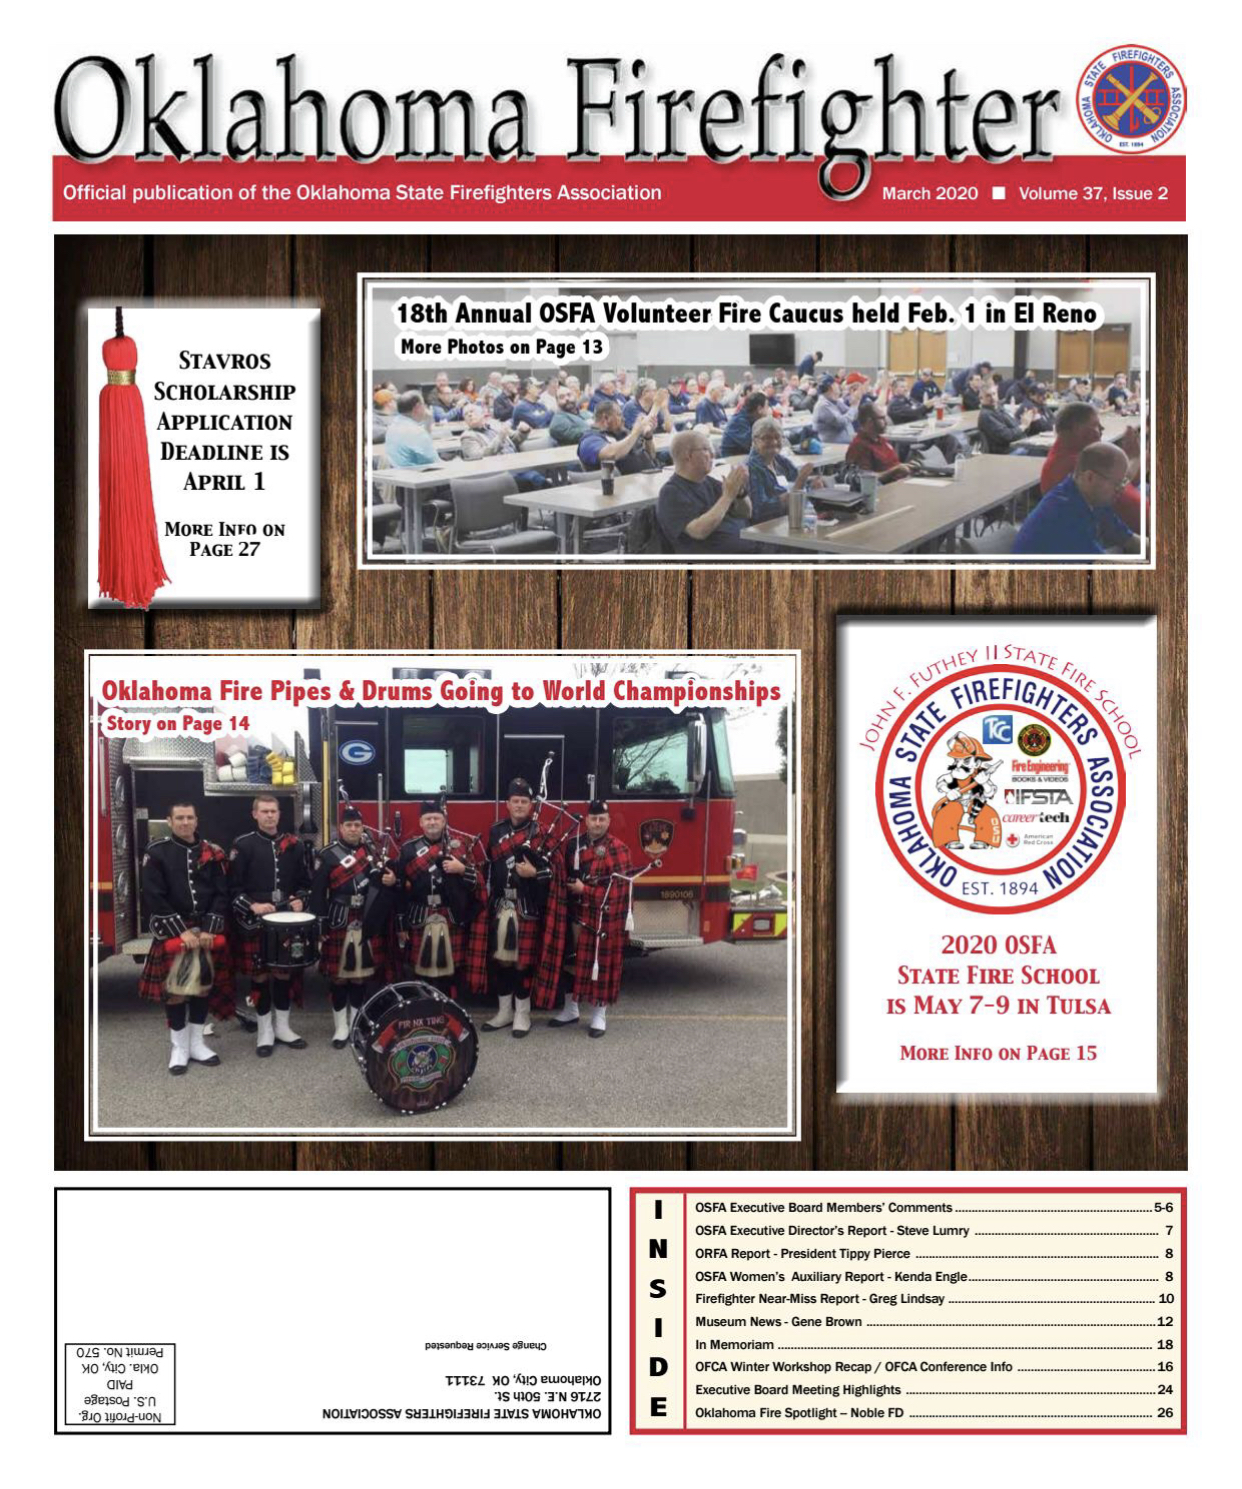 Oklahoma Firefighter Cover March 2020.jpg